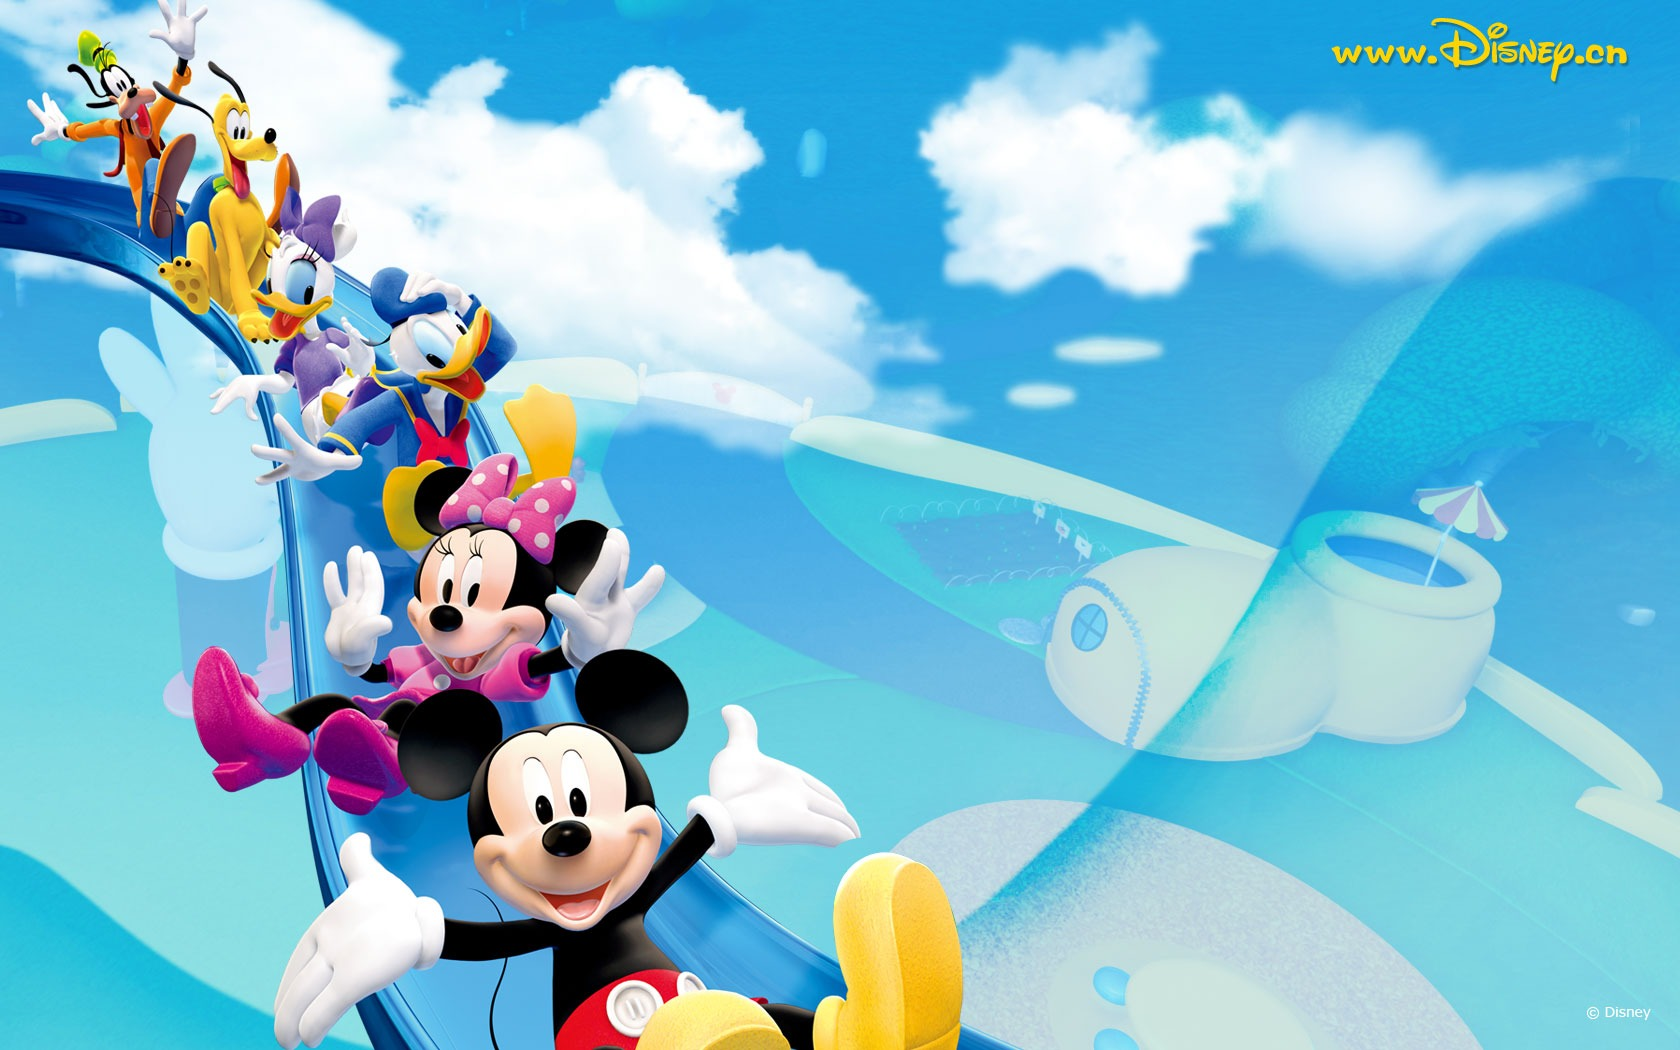 Baby Mickey Mouse Wallpaper Background – Free wallpaper download